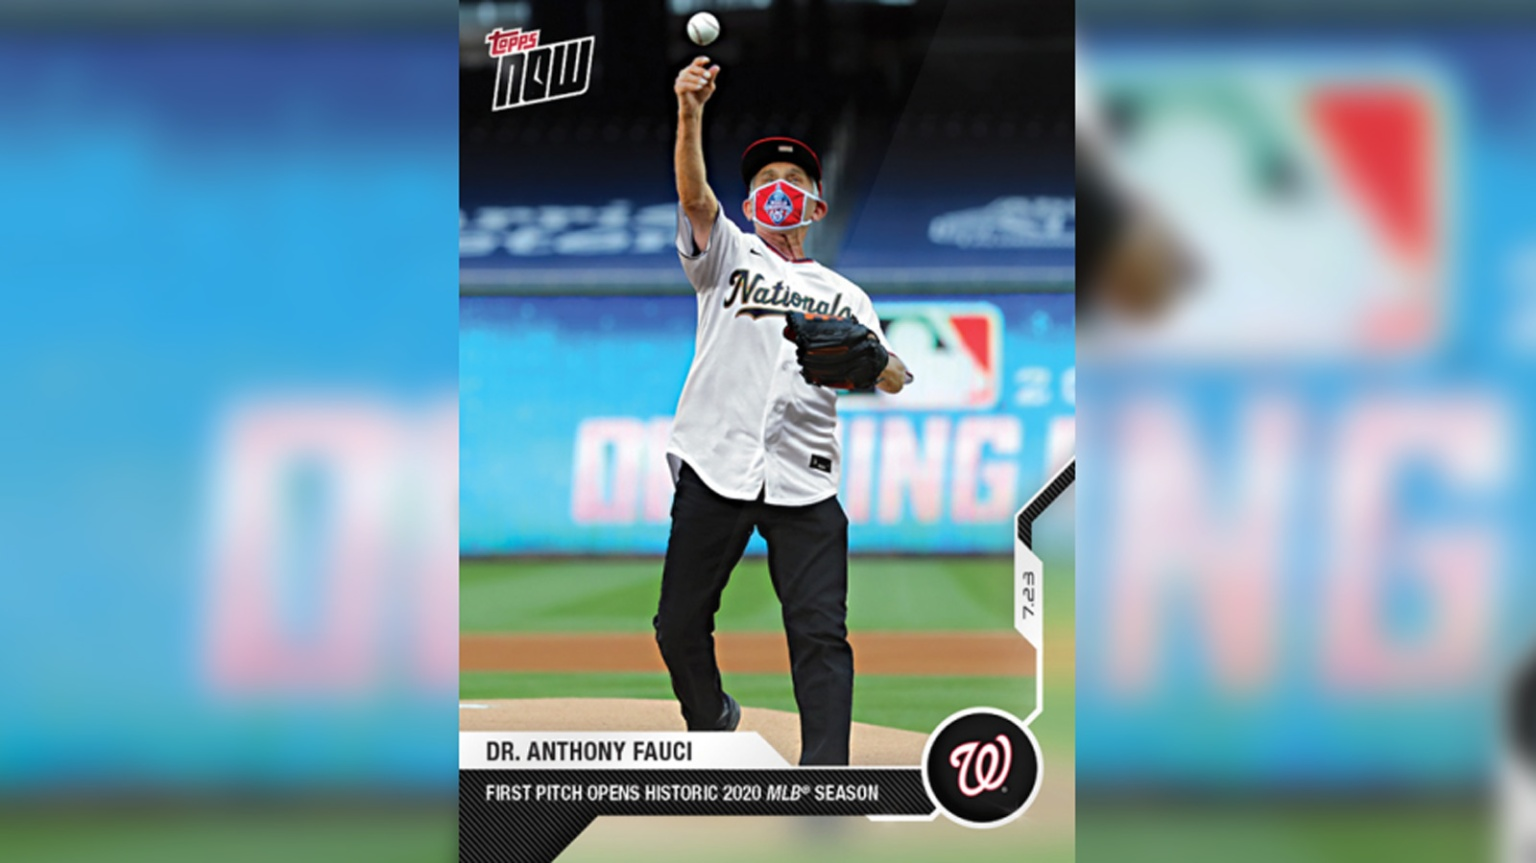 Dr. Anthony Fauci's baseball card just became one of the best selling in Topps' history